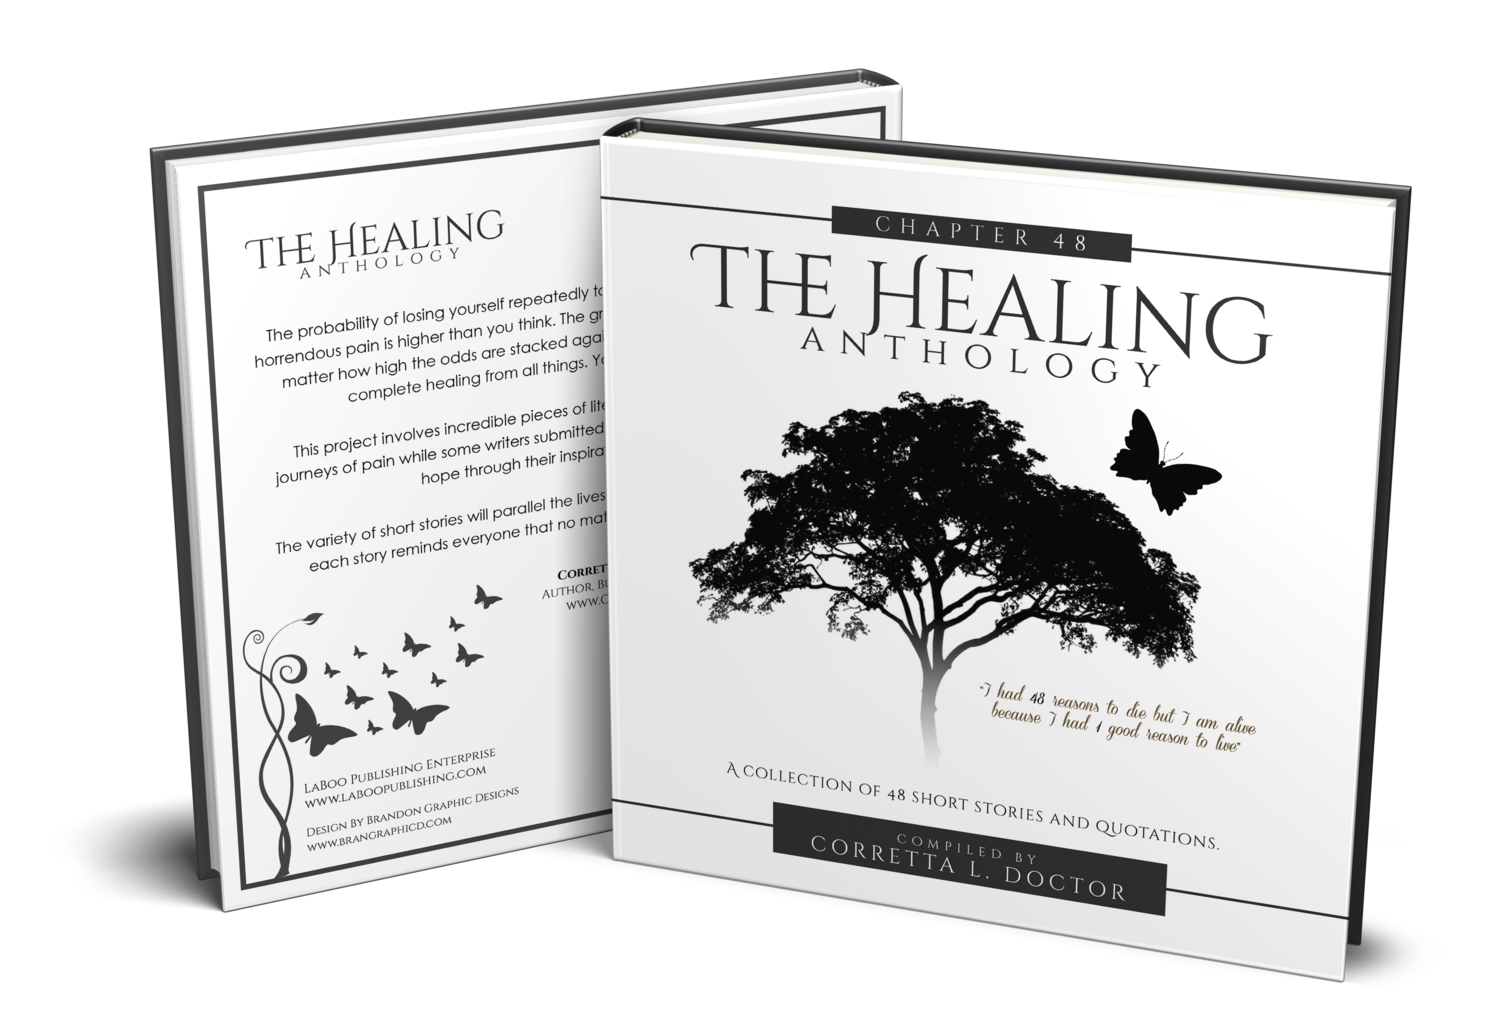 Chapter 48: The Healing Anthology